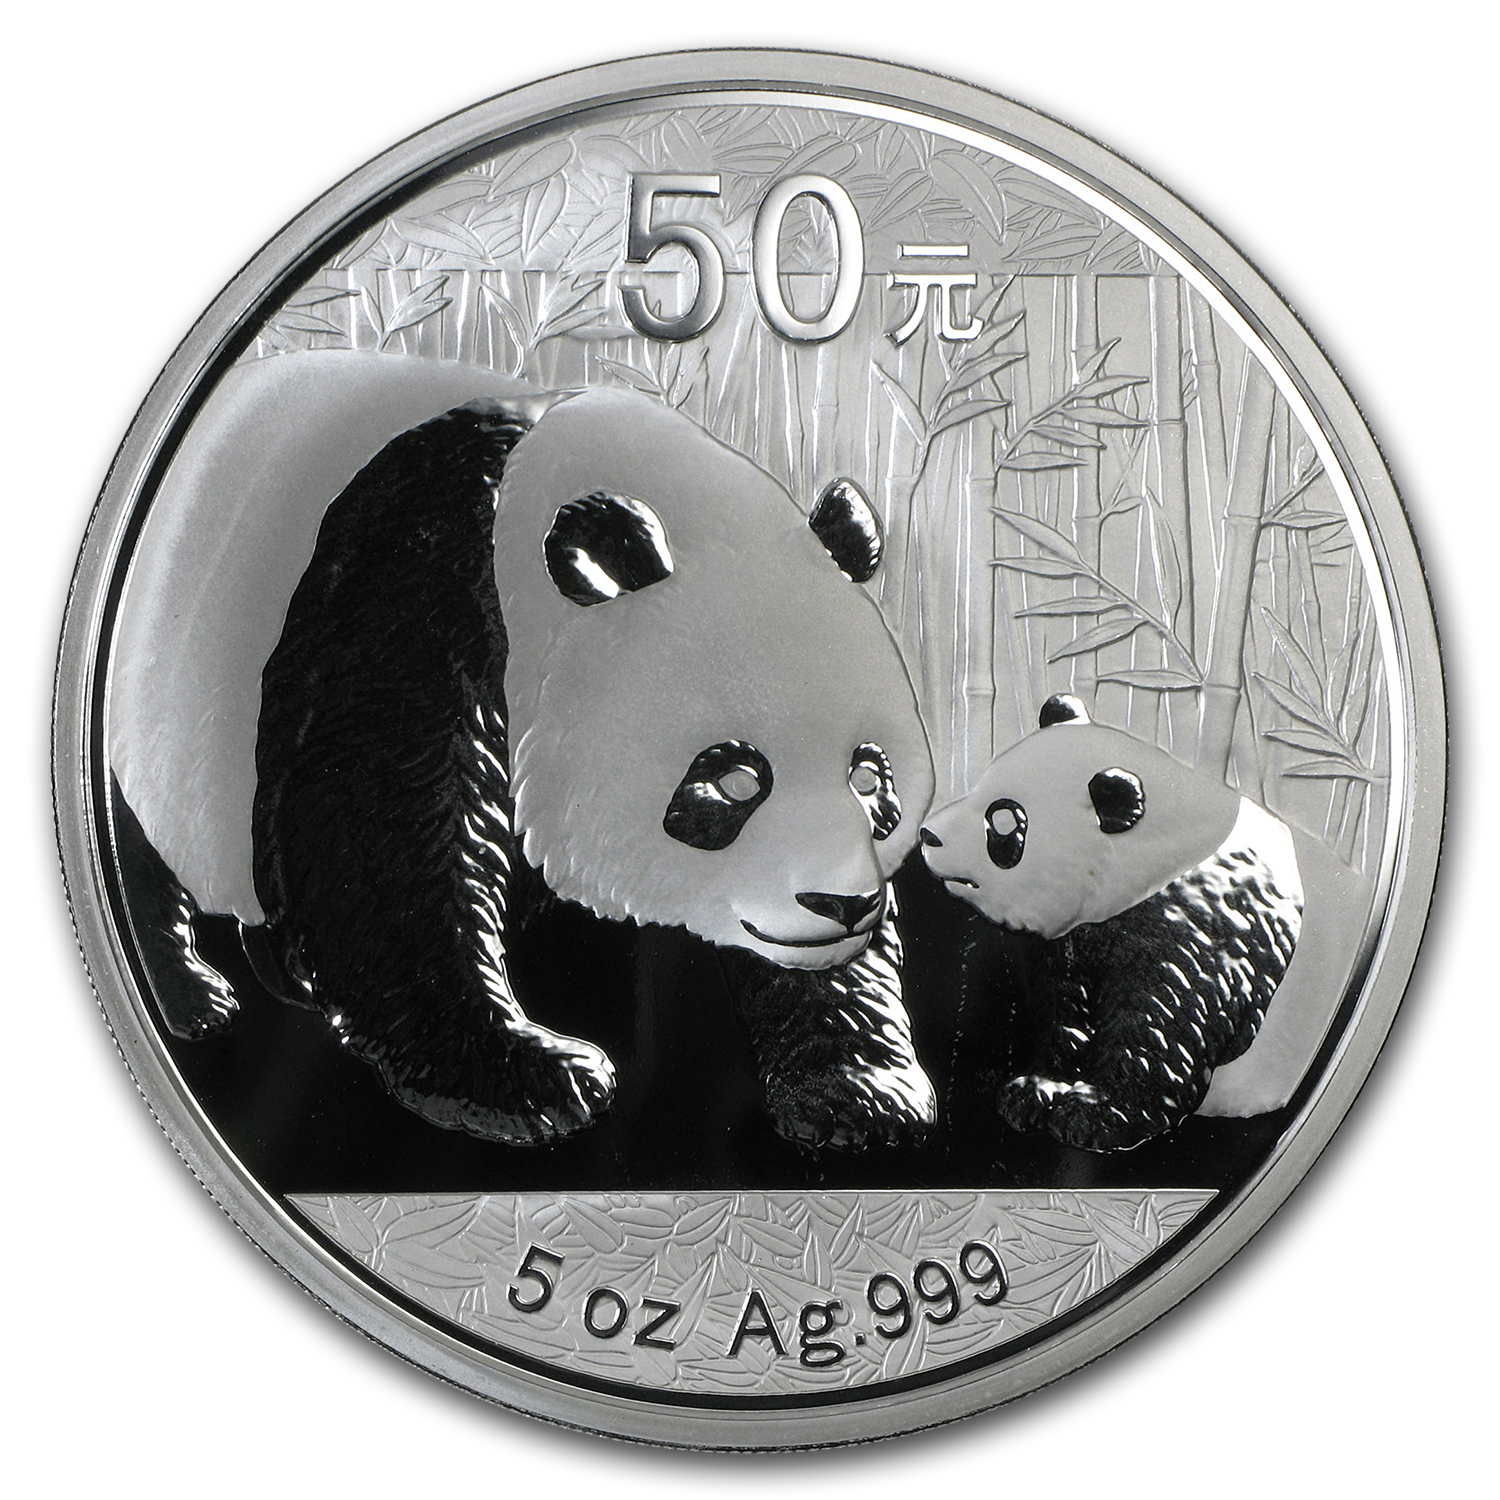 2011 China 5 oz Silver Panda Proof (w/Box & COA)